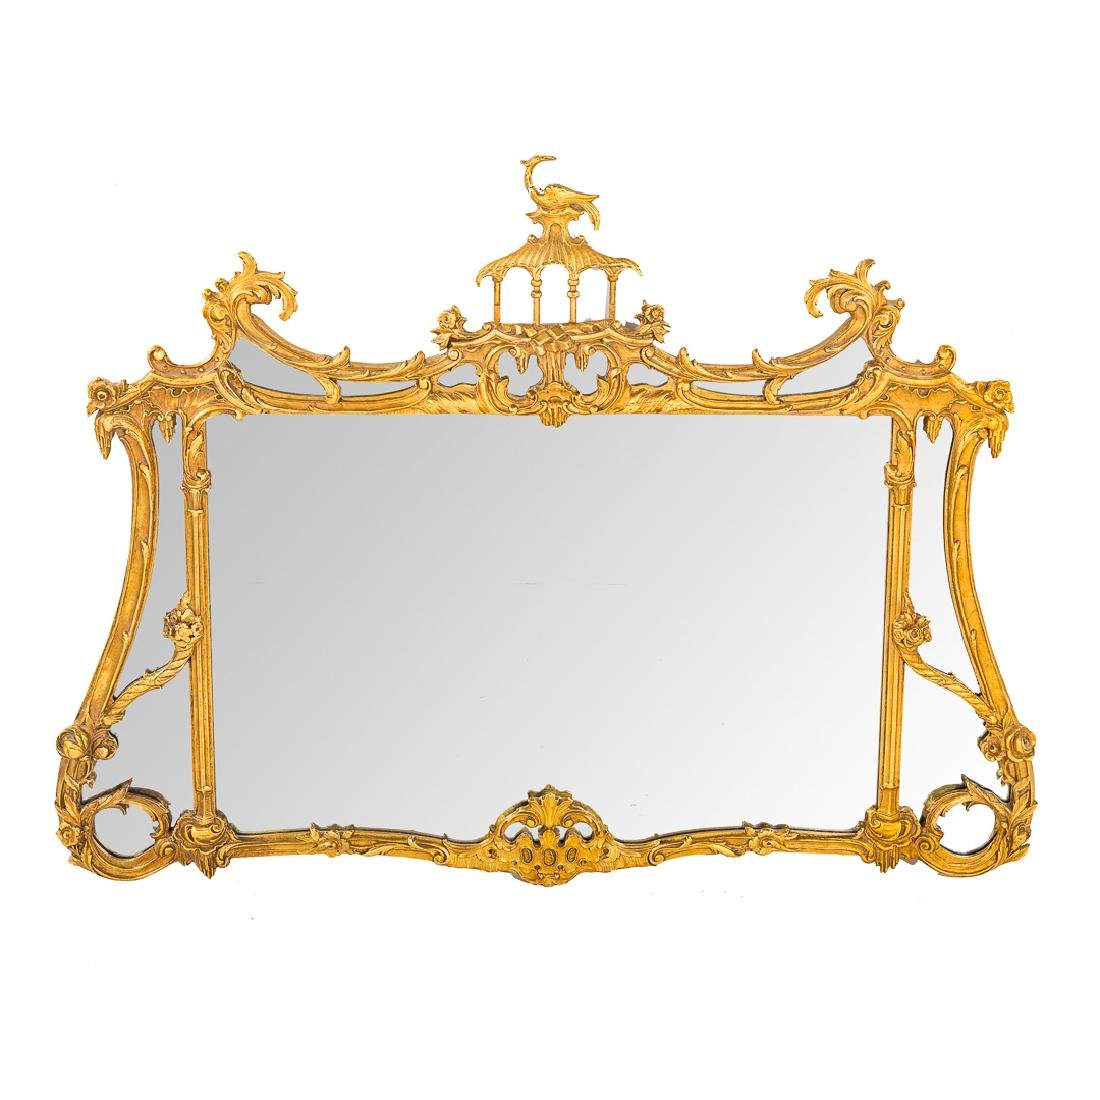 Chinese-Chippendale style gilt over mantle mirror,